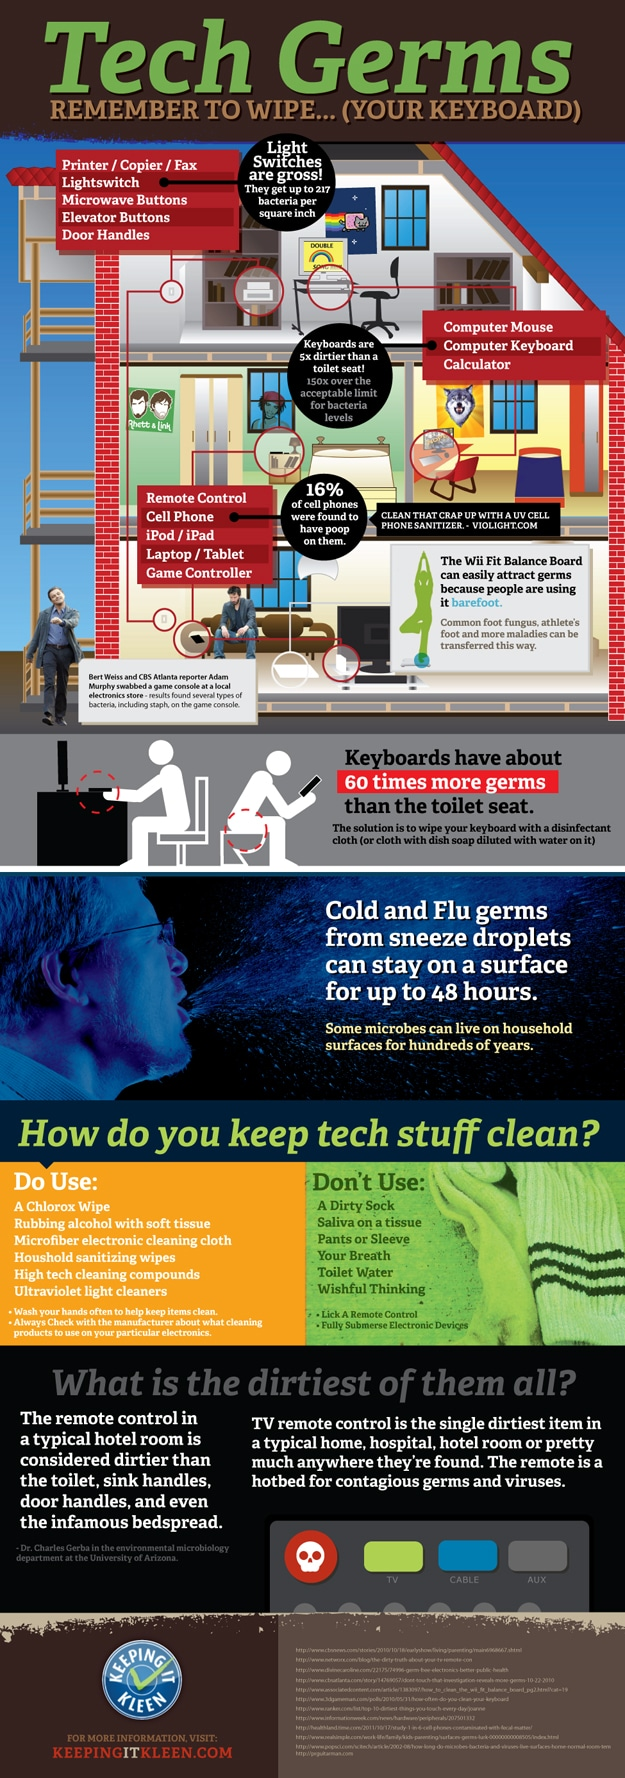 Technology Gadgets Are Very Dirty